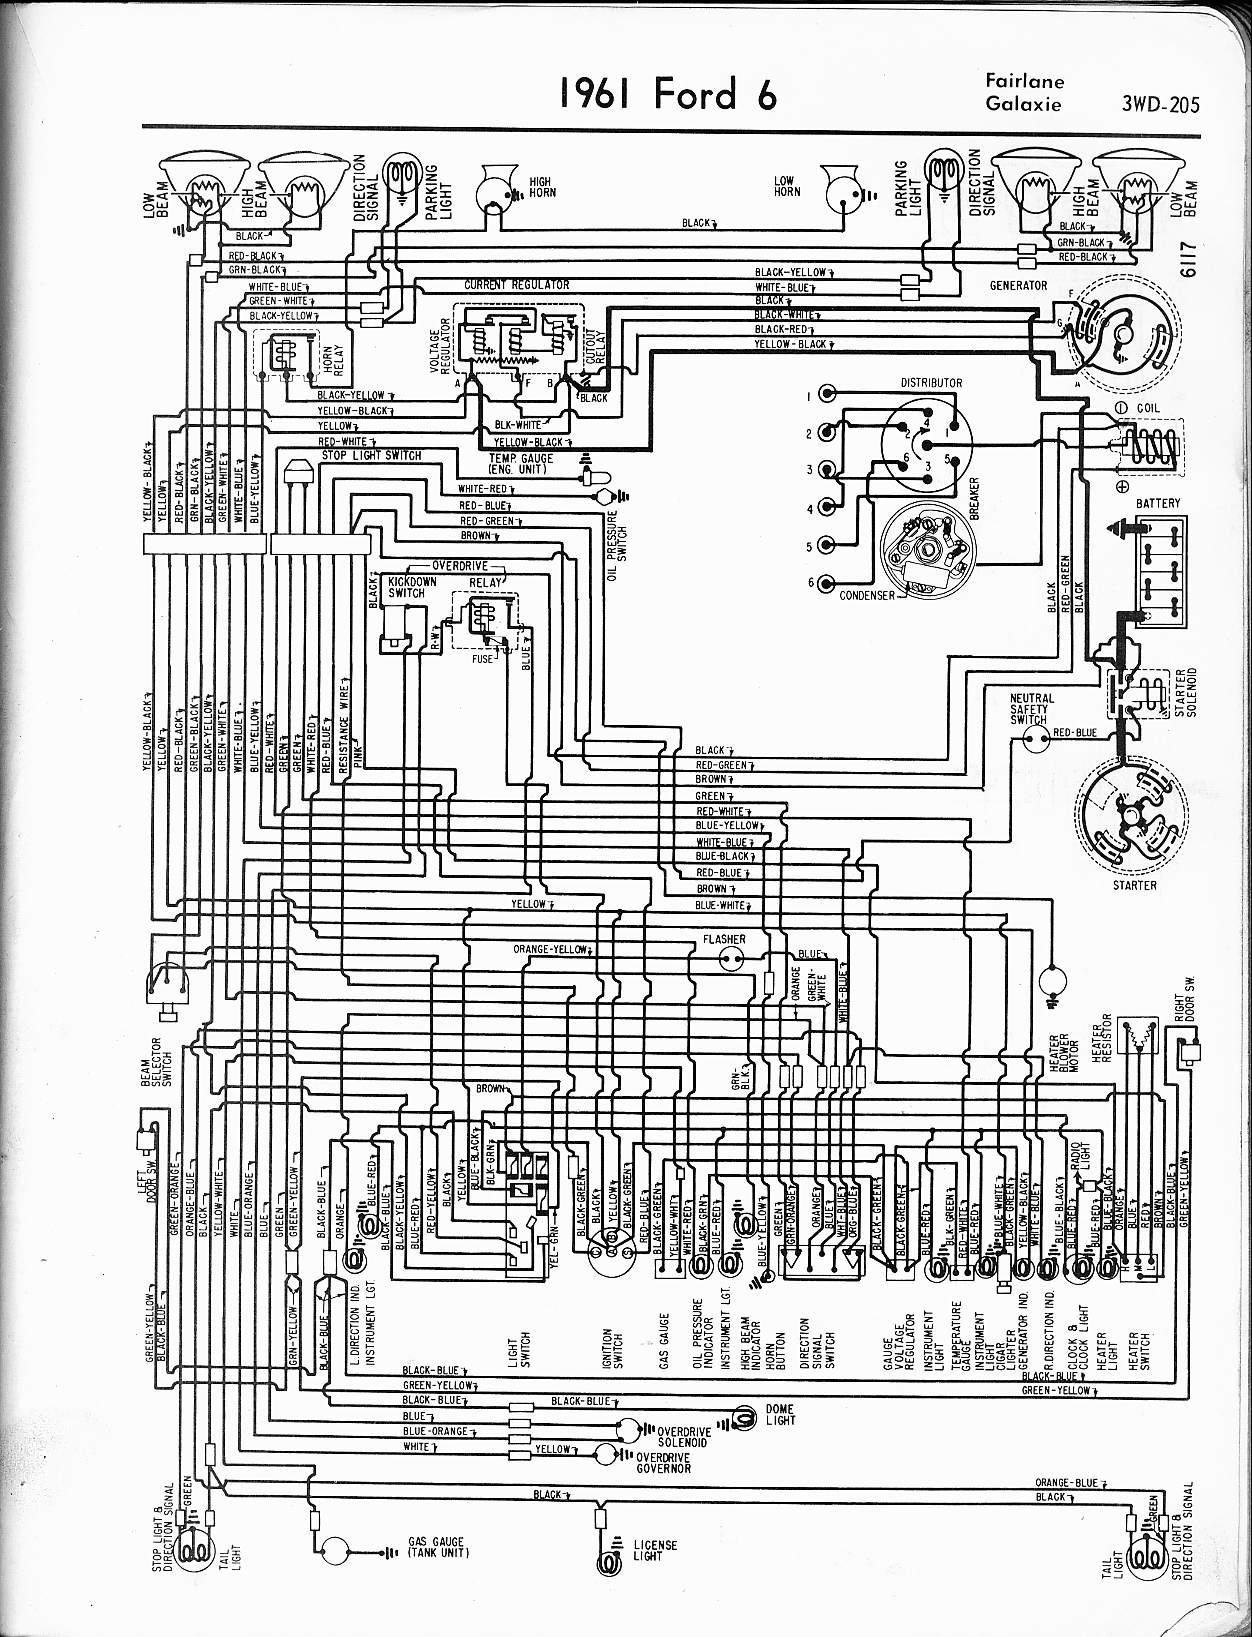 hight resolution of 1972 ford f250 ignition wiring diagram simple wiring diagram rh david huggett co uk 1968 ford